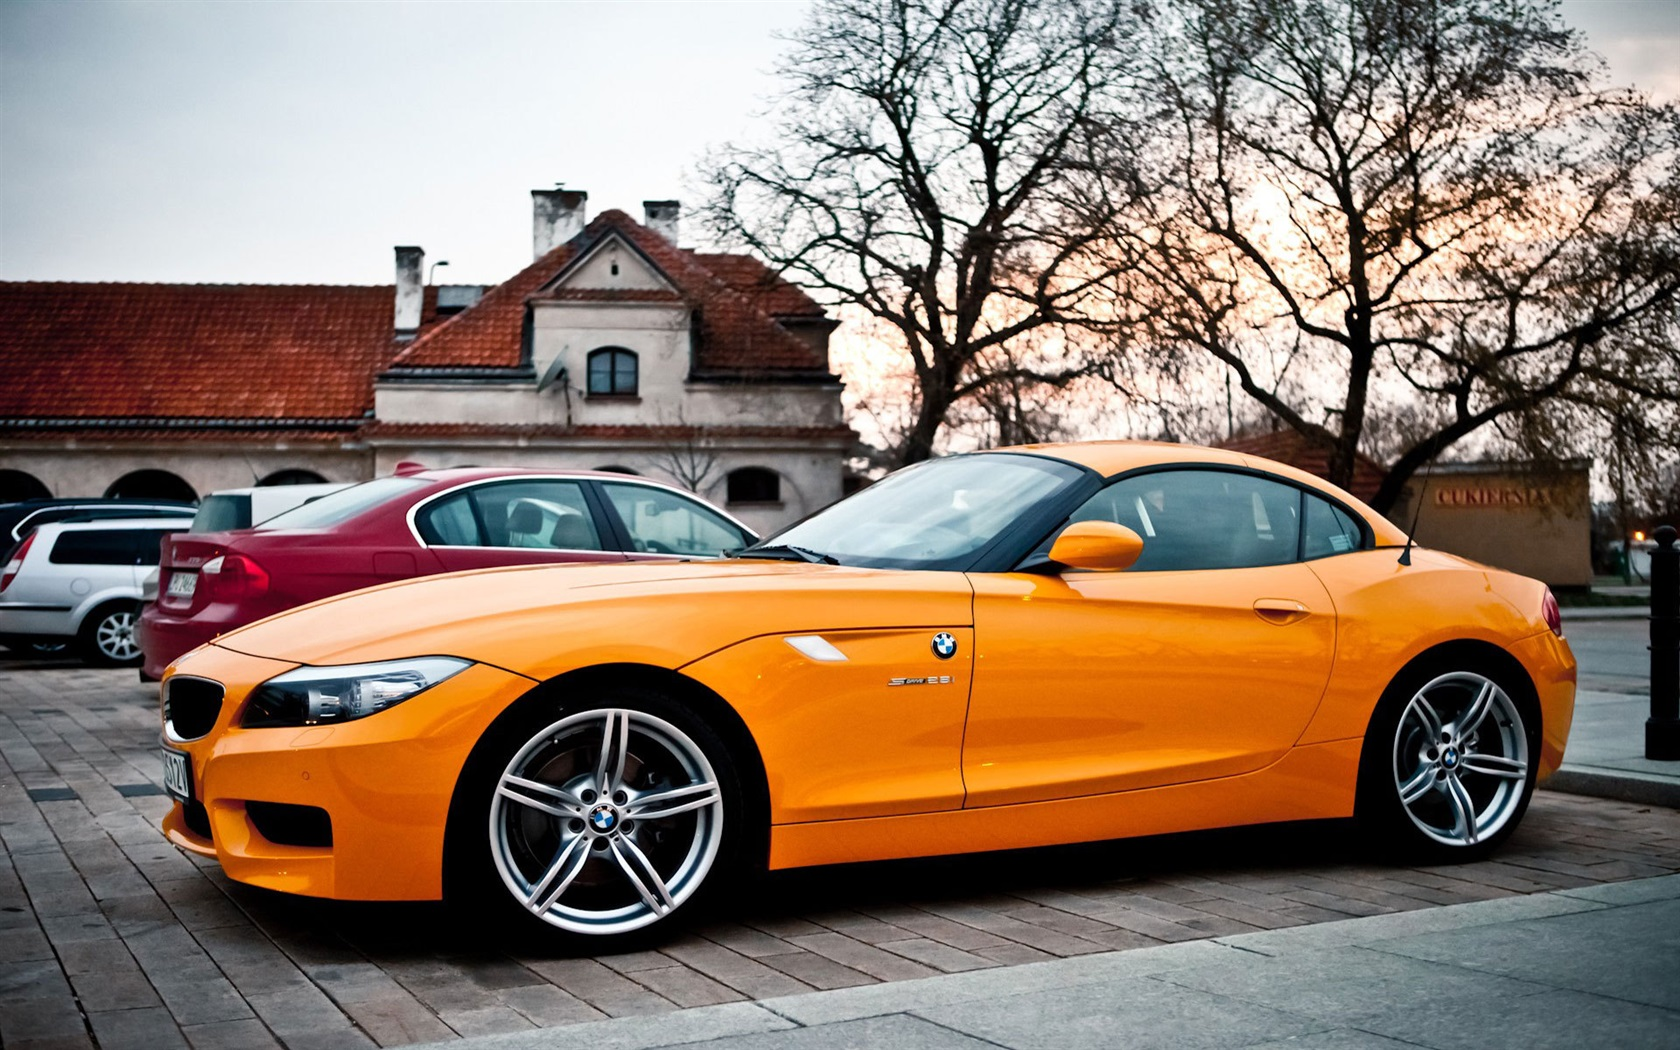 Wallpaper Bmw Z4 Orange Car 1920x1200 Hd Picture Image